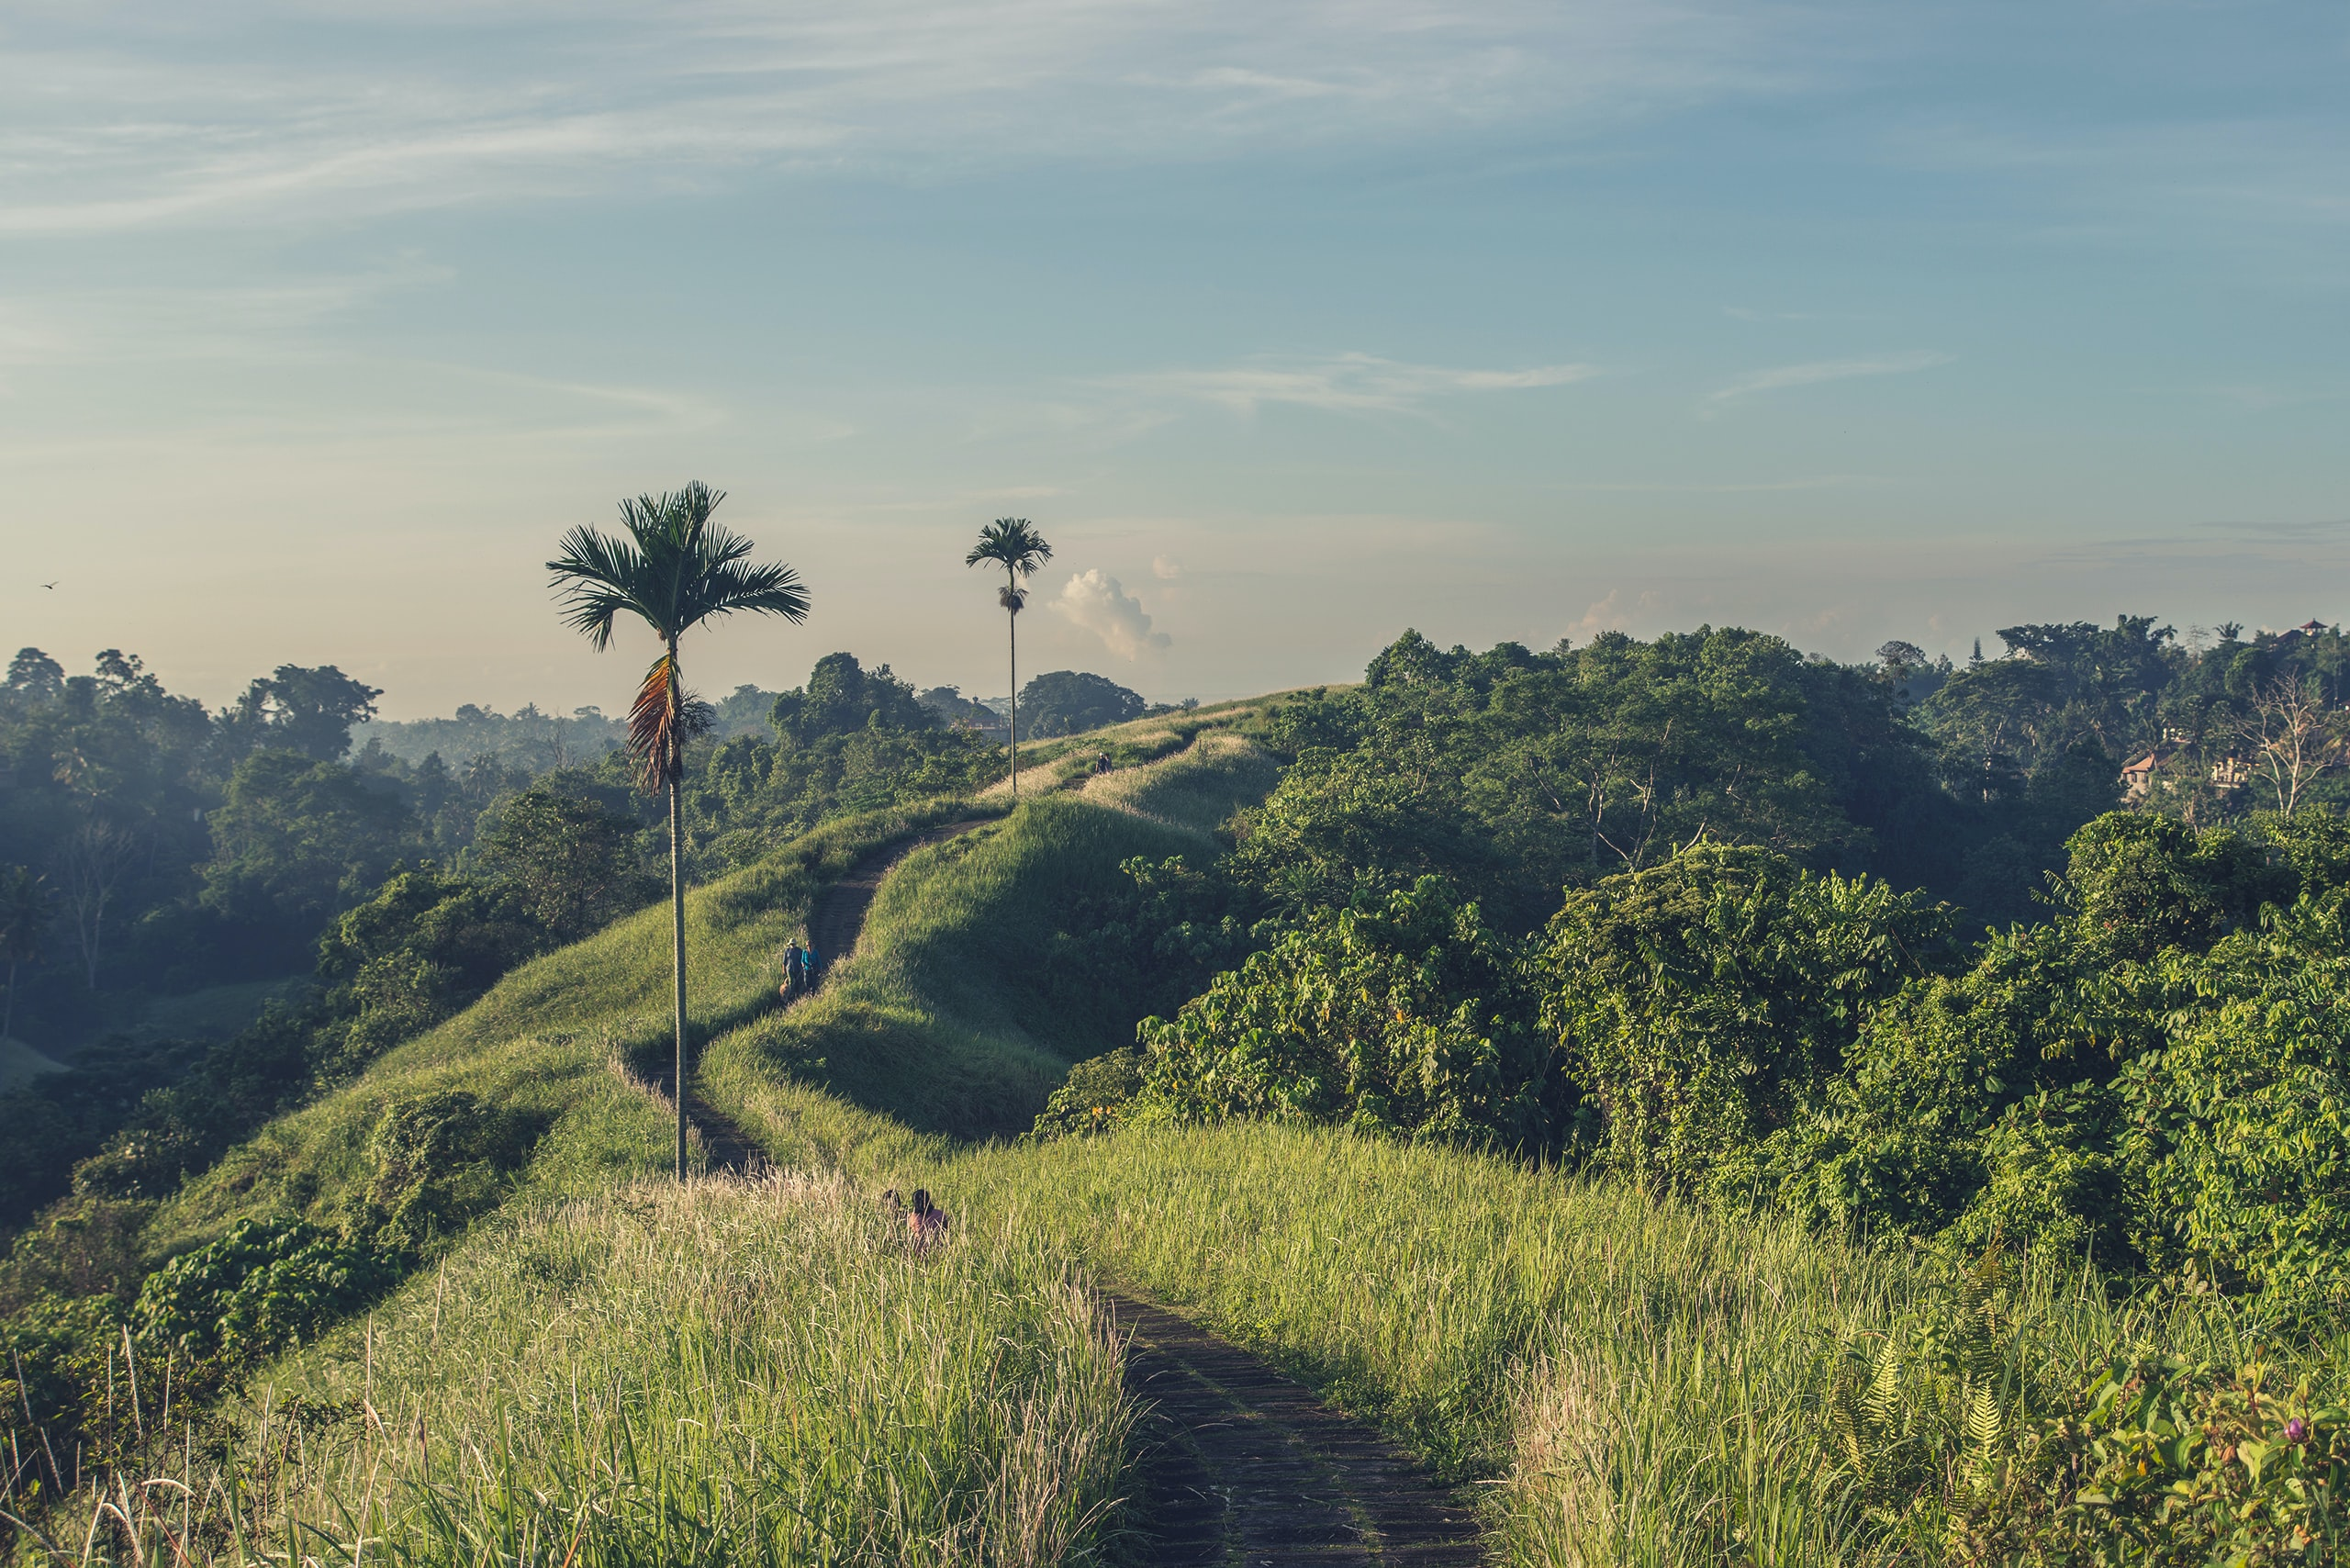 People on a dirt path leading up a hill with palms and leafy trees on the side